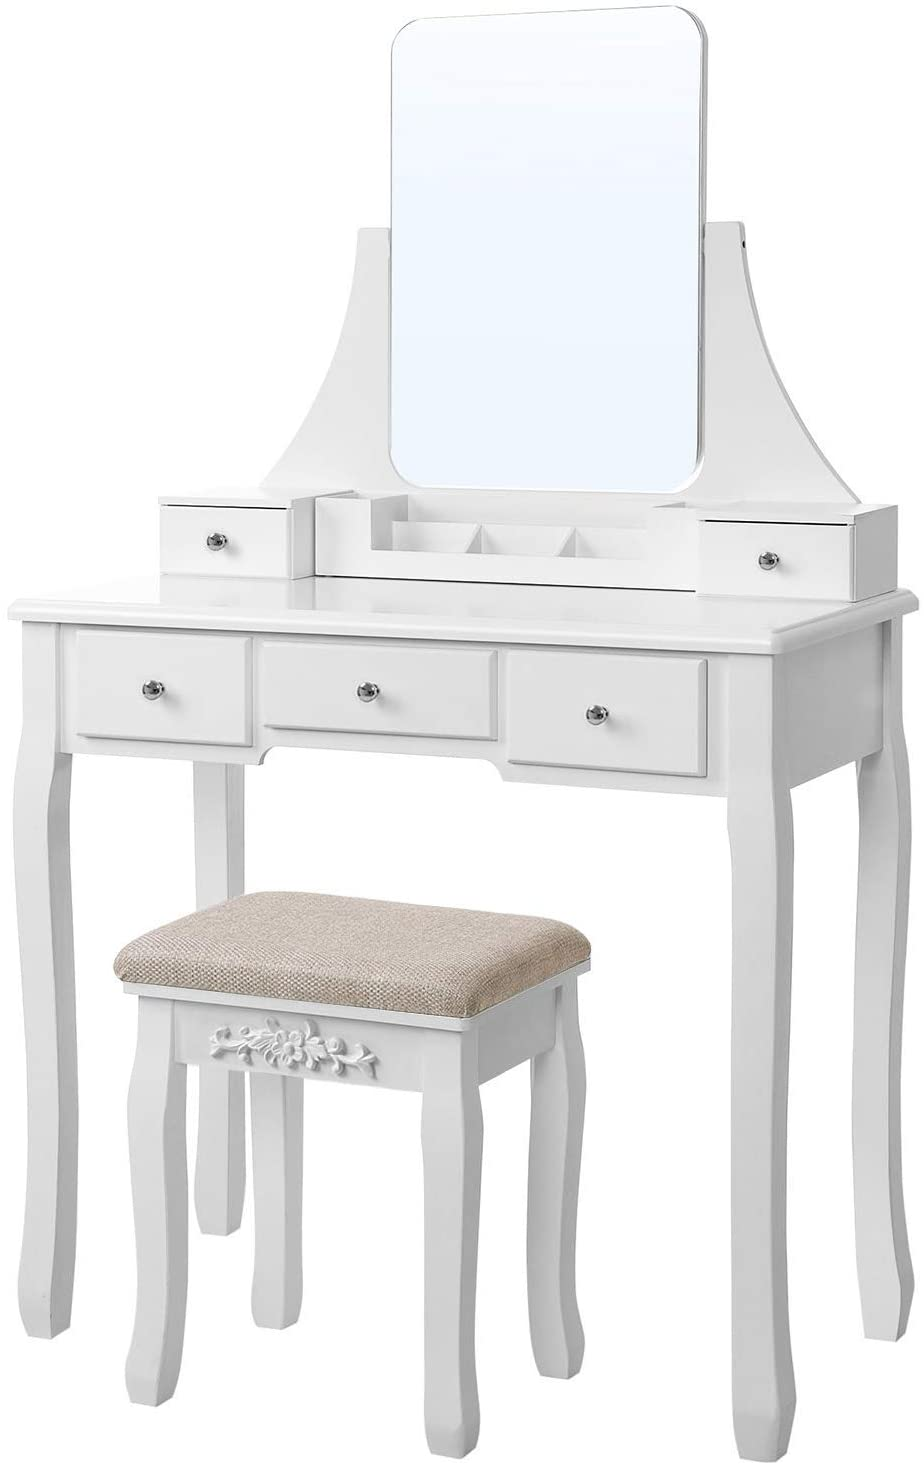 Enjoy fast, free nationwide shipping!  Family owned and operated, HawkinsWoodshop.com is your one stop shop for affordable furniture.  Shop HawkinsWoodshop.com for solid wood & metal modern, traditional, contemporary, industrial, custom, rustic, and farmhouse furniture including our White Frameless Mirror Vanity Set with Cushioned Stool.